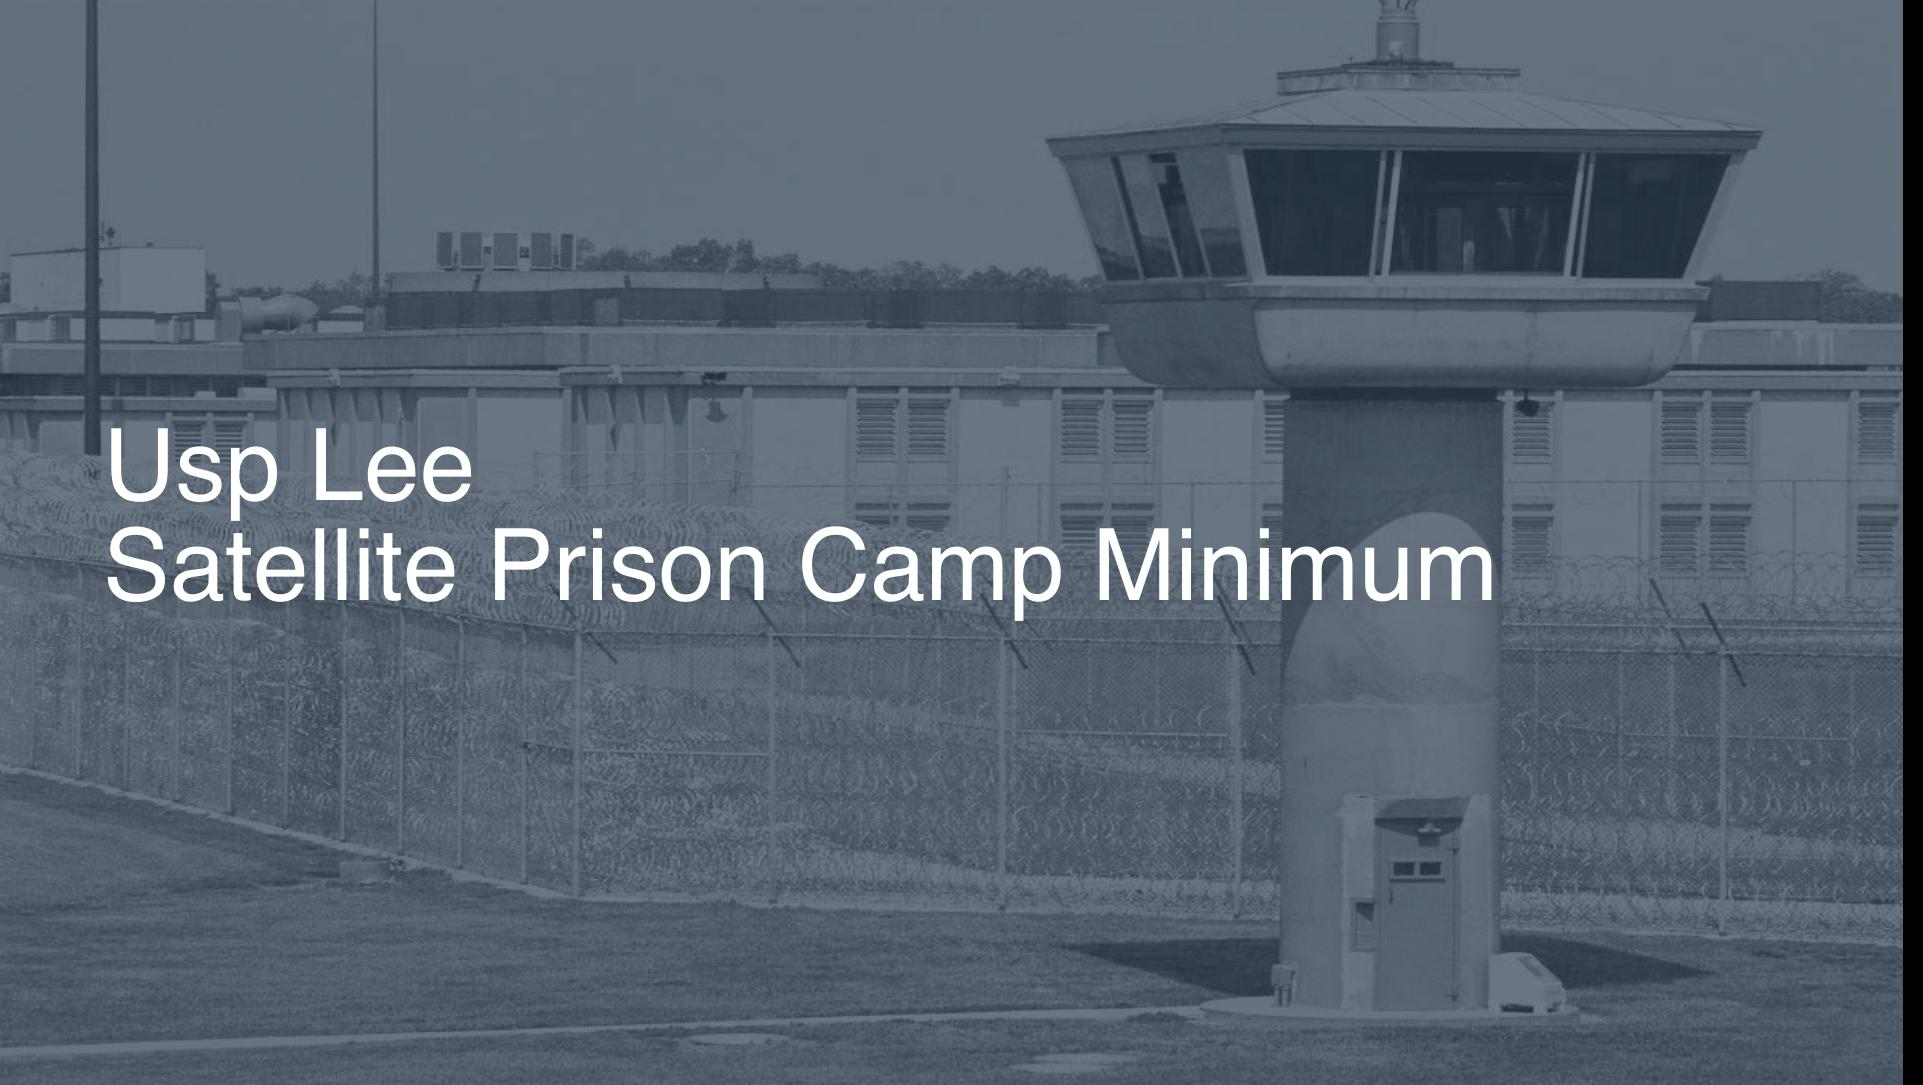 USP - Lee Satellite Prison Camp - Minimum correctional facility picture